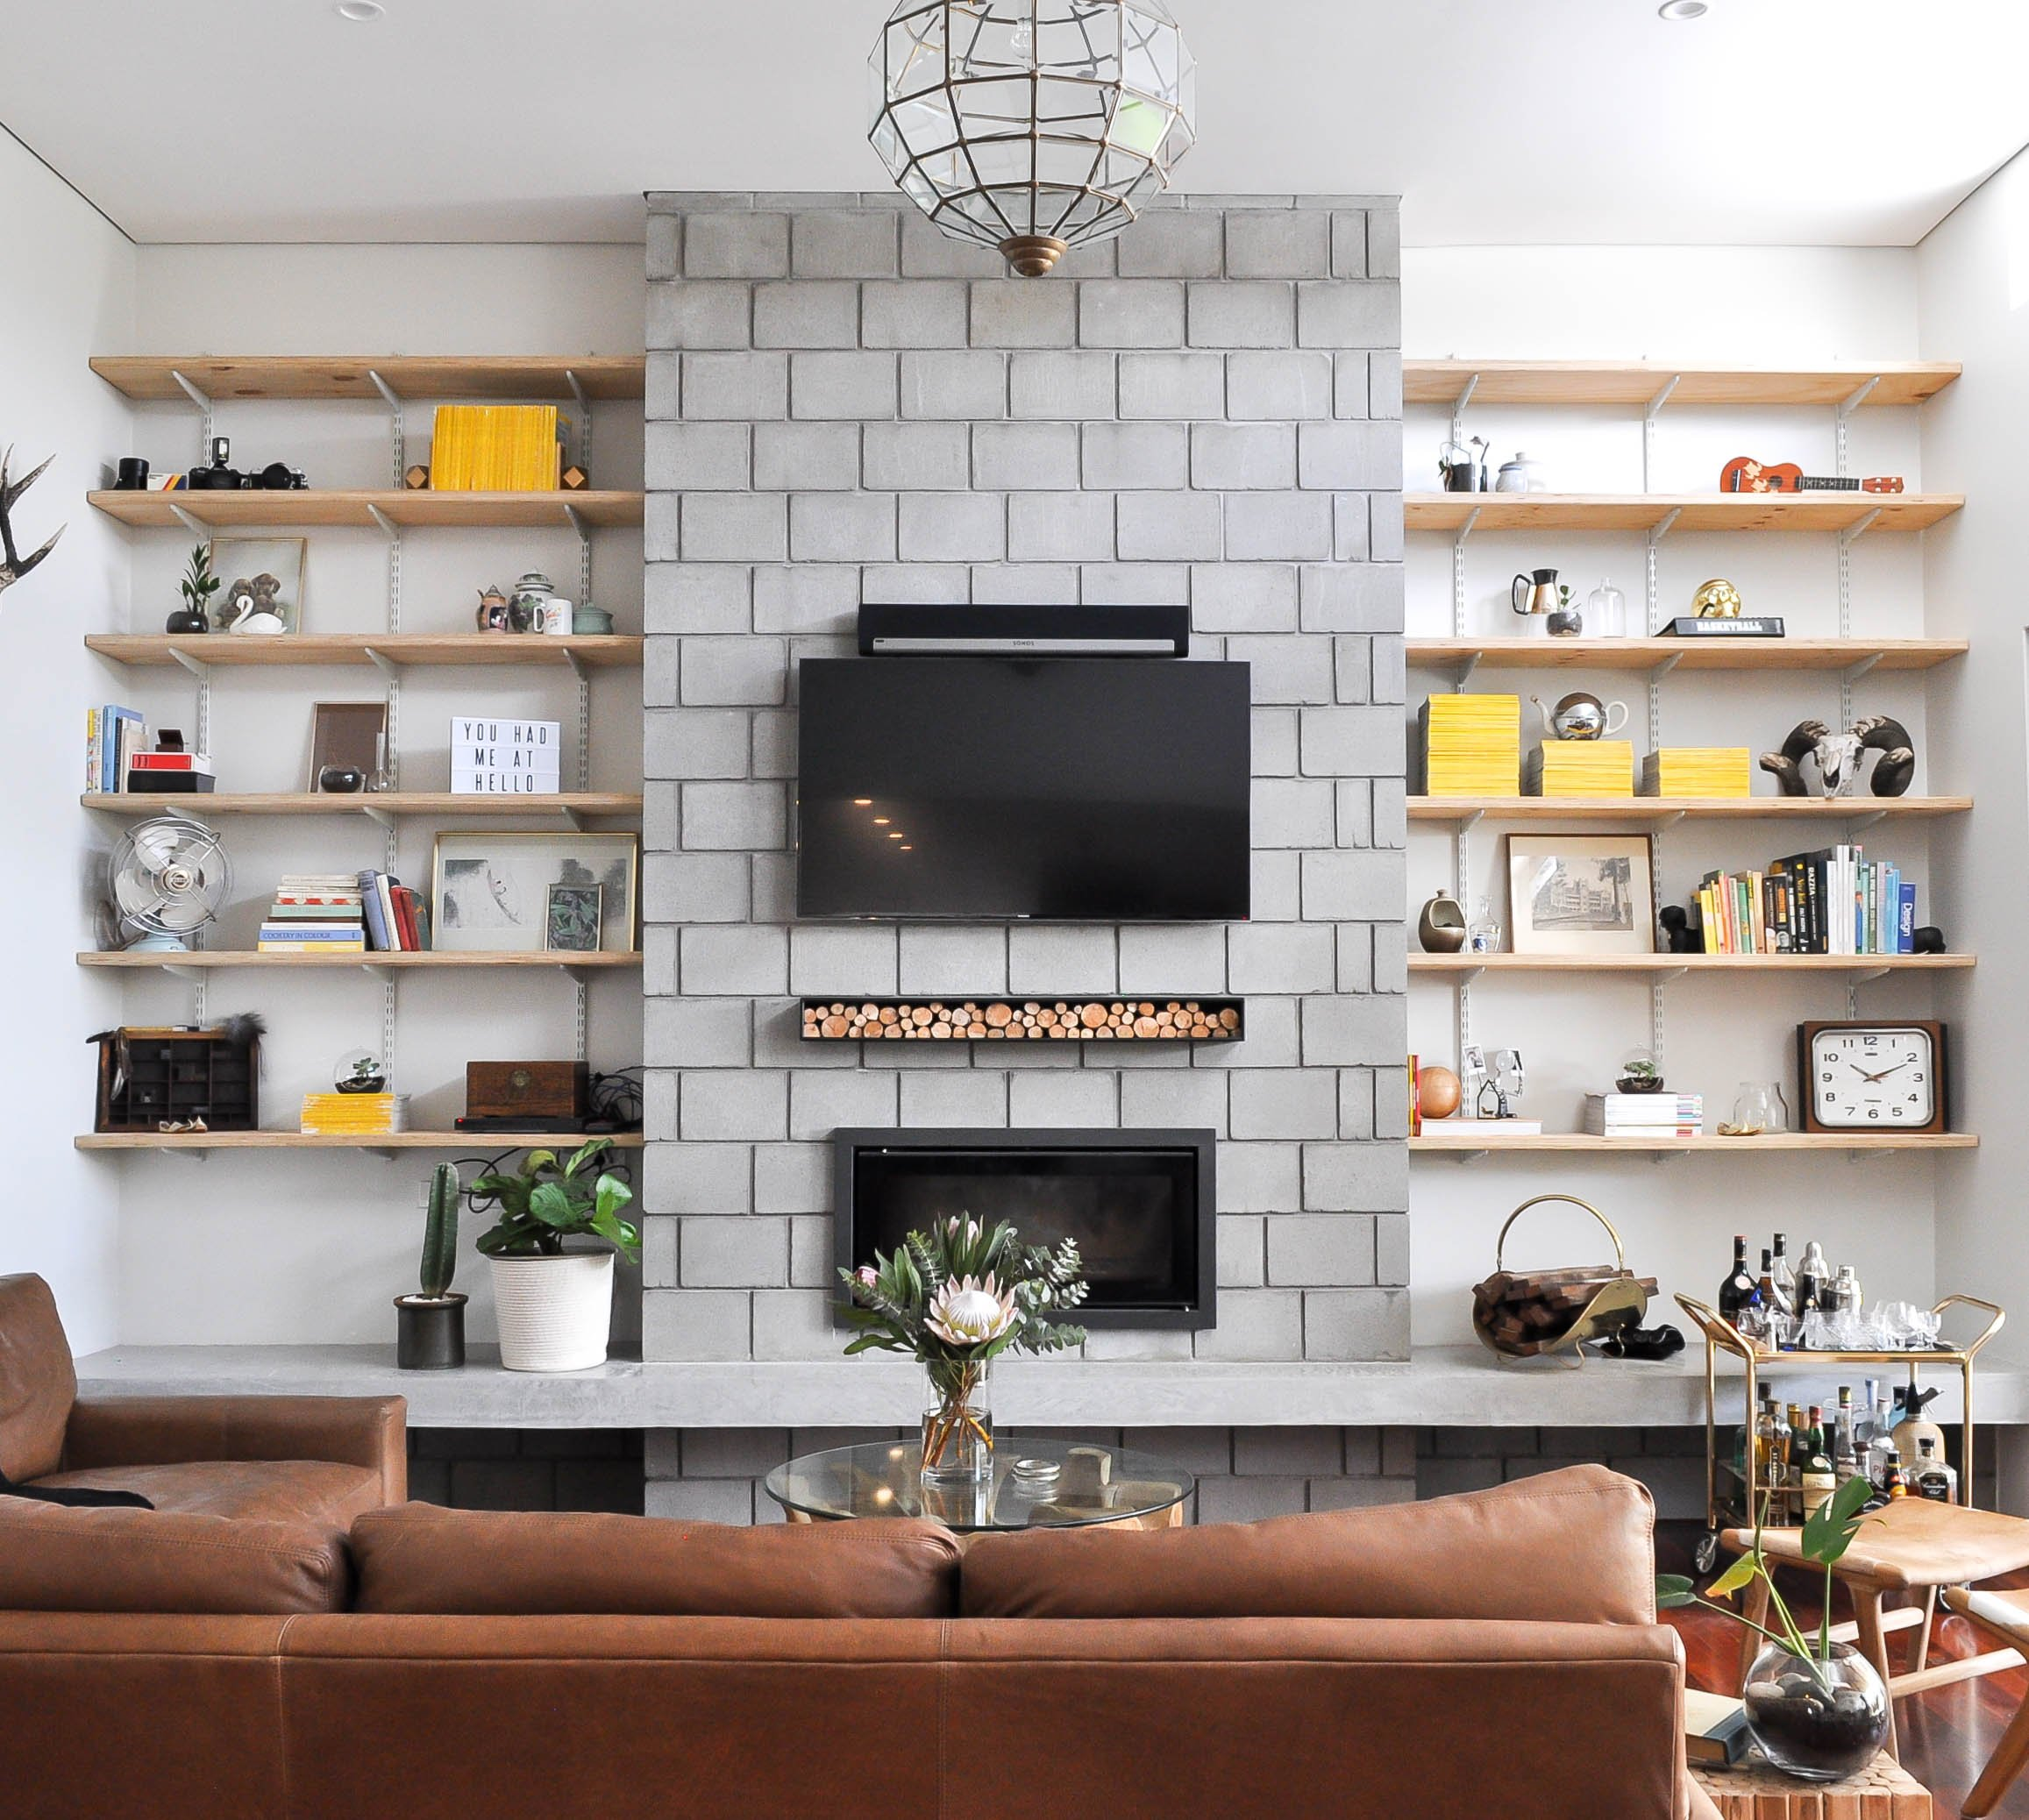 living room with open shelves and wall mount fireplace